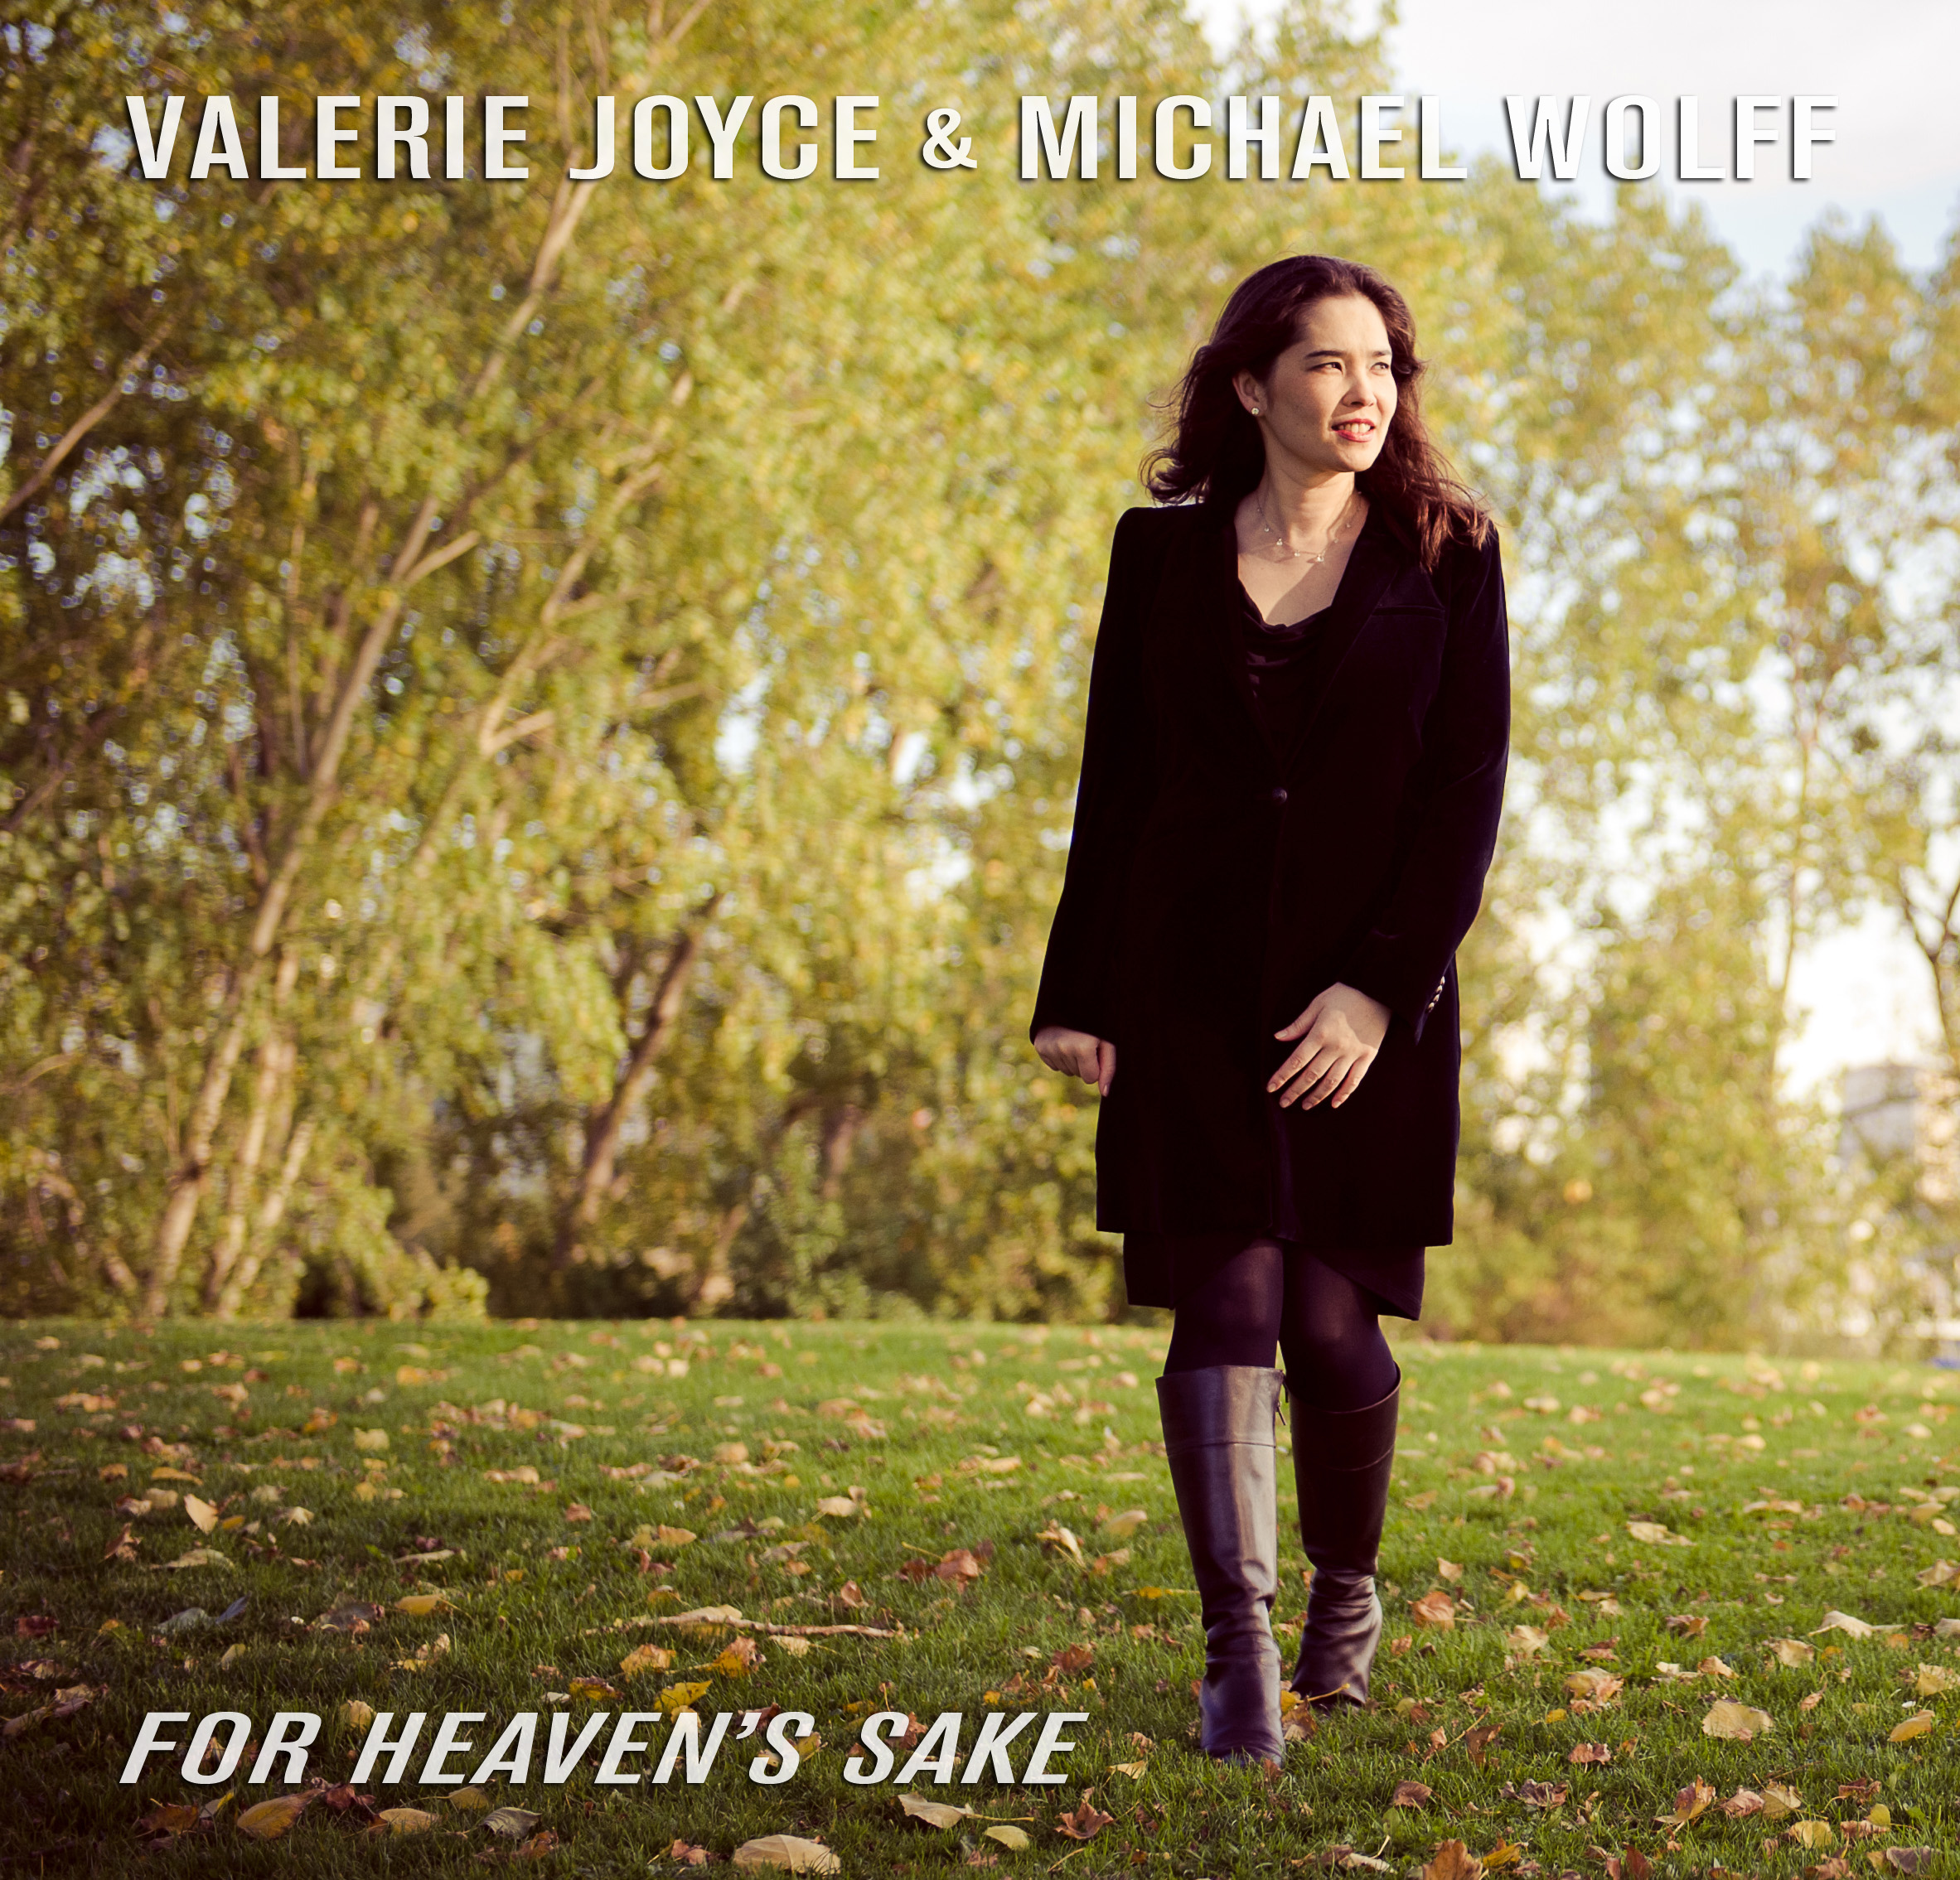 Valerie Joyce & Michael Wolff - For Heaven's Sake - Cover Image